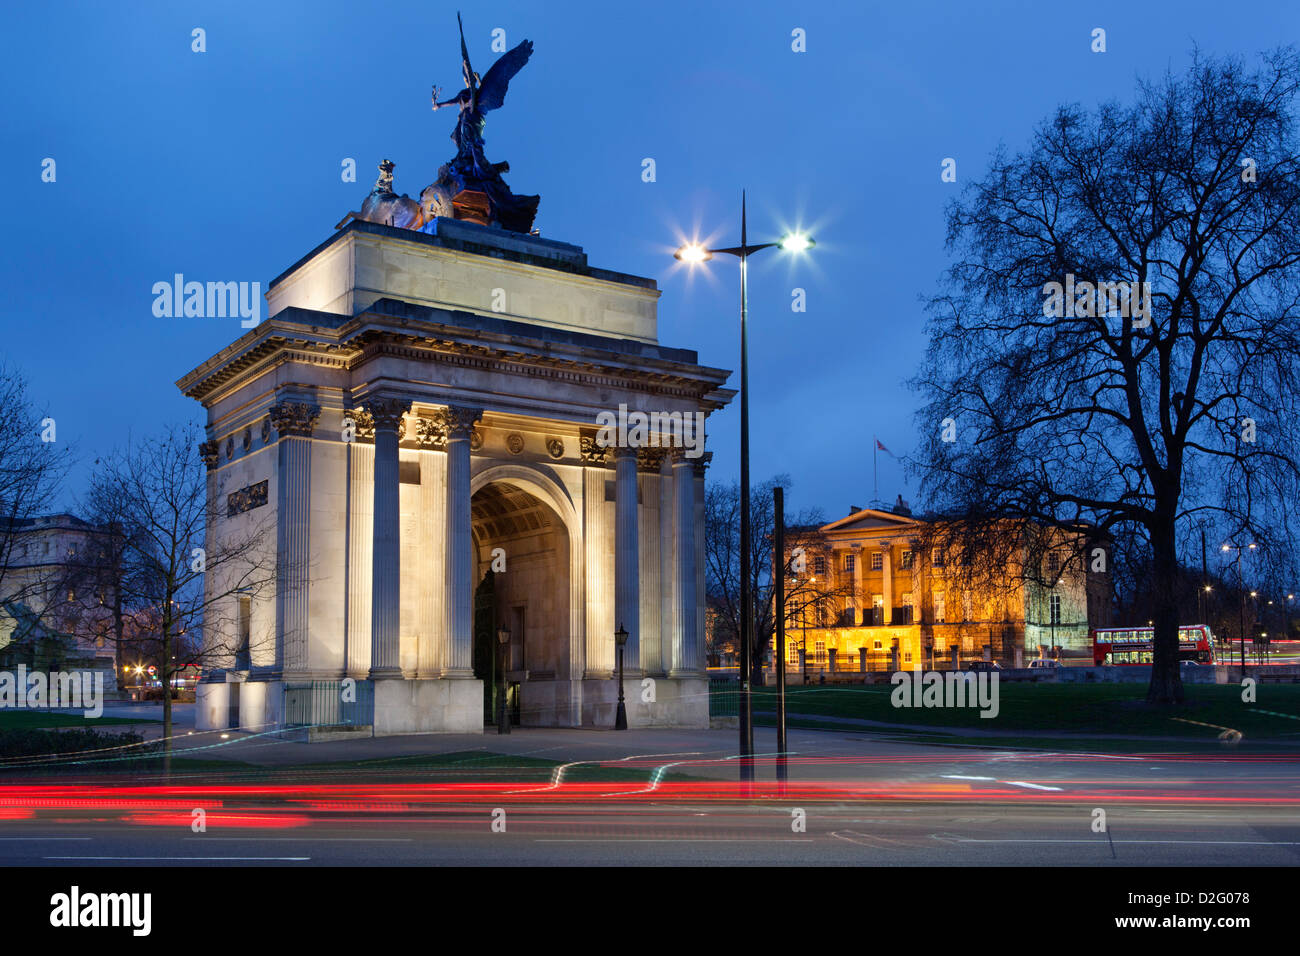 Wellington Arch and Apsley House, former home of the Duke of Wellington, on Hyde Park Corner - Stock Image